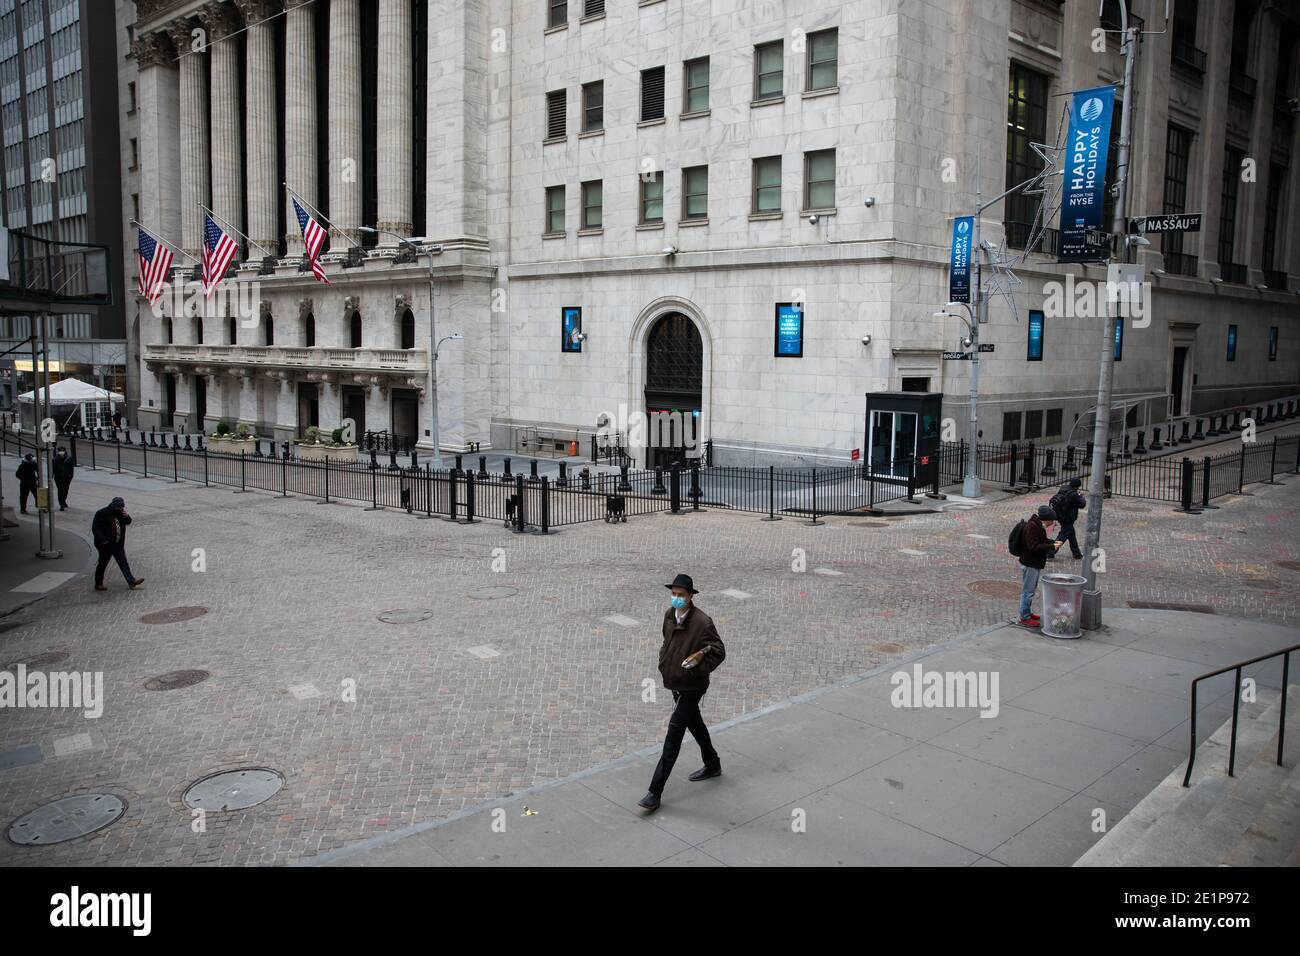 New York, USA. 8th Jan, 2021. Pedestrians walk in front of the New York Stock Exchange (NYSE), in New York, United States, Jan. 8, 2021. U.S. employers slashed 140,000 jobs in December, the first monthly decline since April 2020, as the recent COVID-19 spikes disrupted labor market recovery, the Labor Department reported Friday. The unemployment rate, which has been trending down over the past seven months, remained unchanged at 6.7 percent, according to the monthly employment report. Credit: Michael Nagle/Xinhua/Alamy Live News Stock Photo